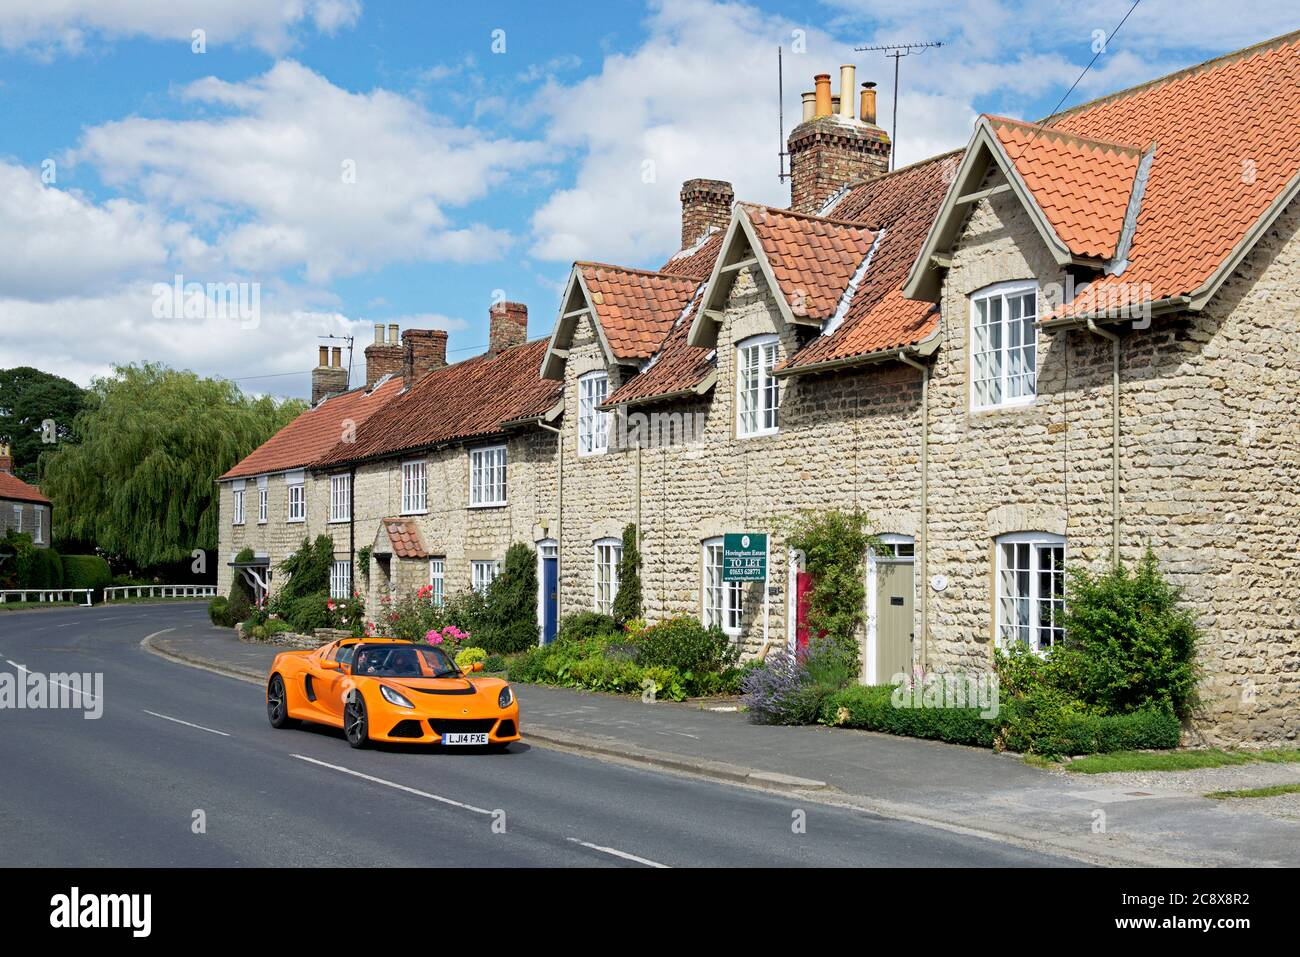 sports-car-in-the-village-of-hovingham-ryedale-north-yorkshire-england-uk-2C8X8R2.jpg